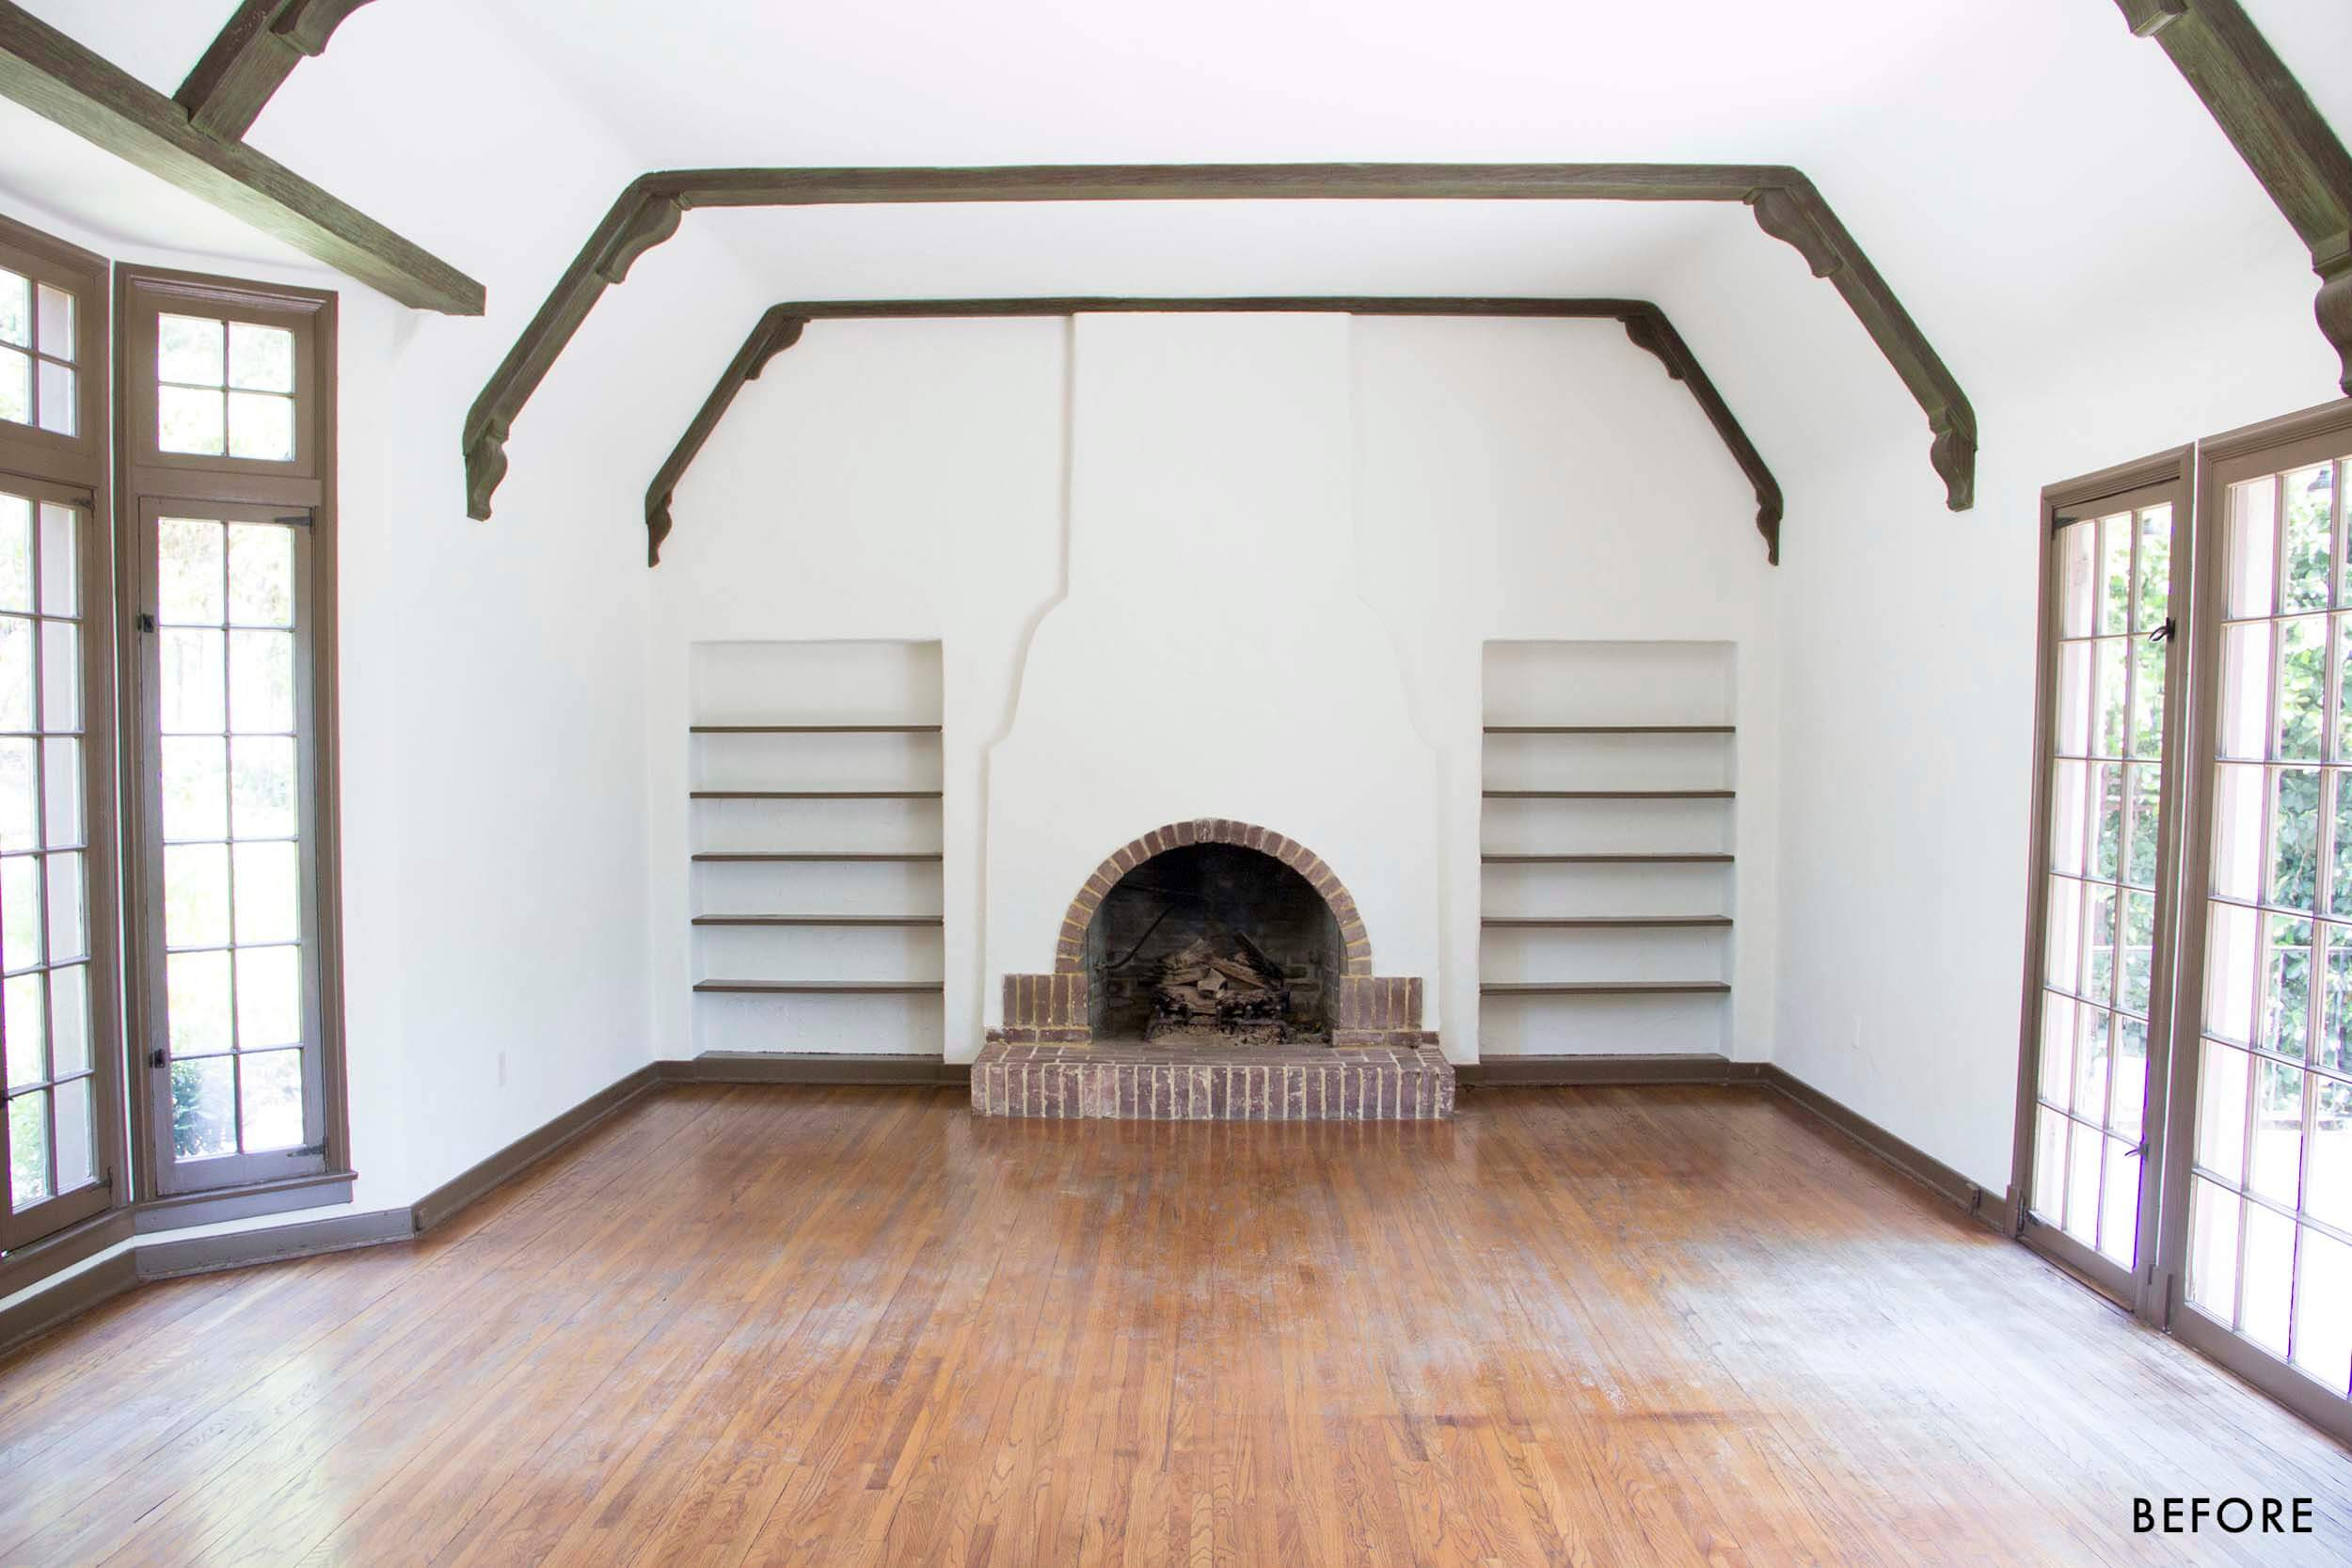 hardwood floor installation cost denver of how we refinished our wood beams emily henderson with emily henderson waverly living room new before emily henderson waverly living room before closeup